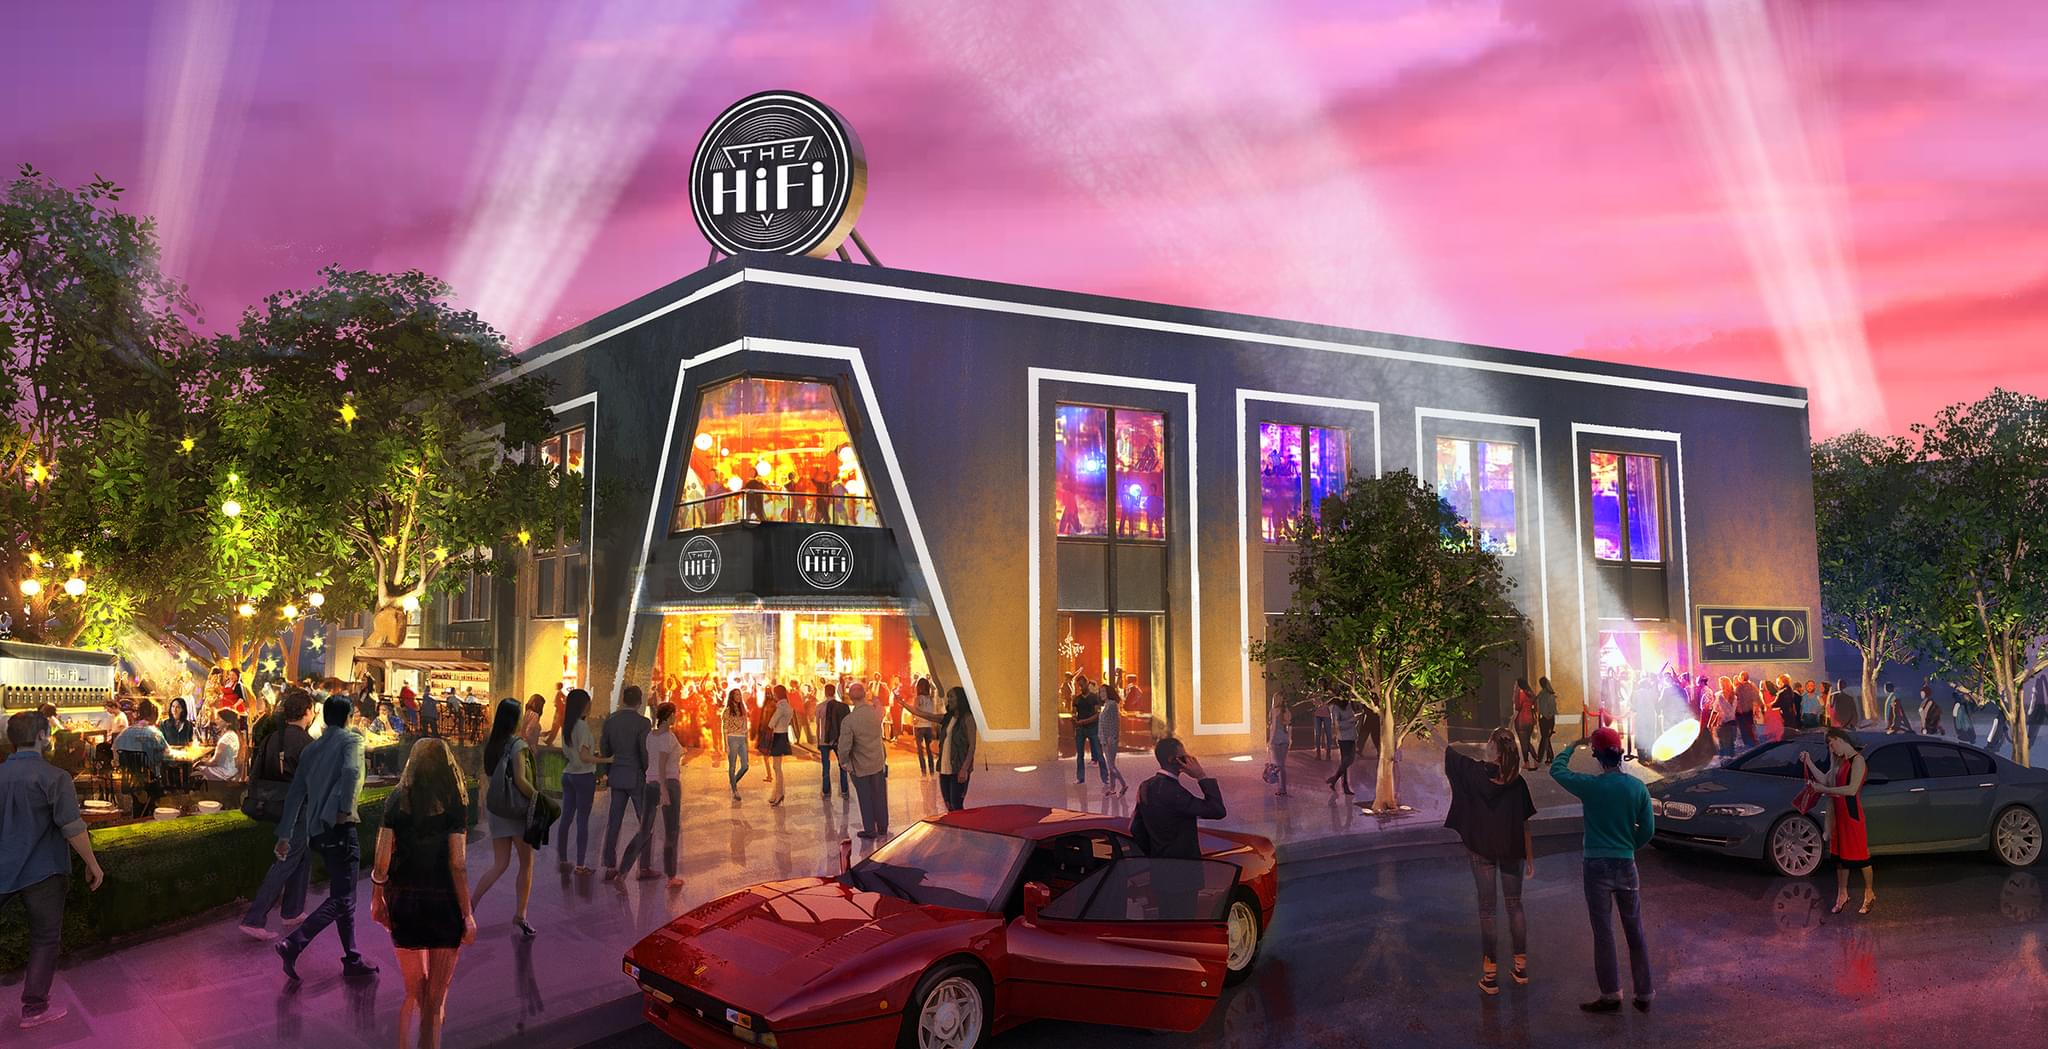 A Brand New 1,000 Seat Concert Venue Is Coming To The Dallas Design District!